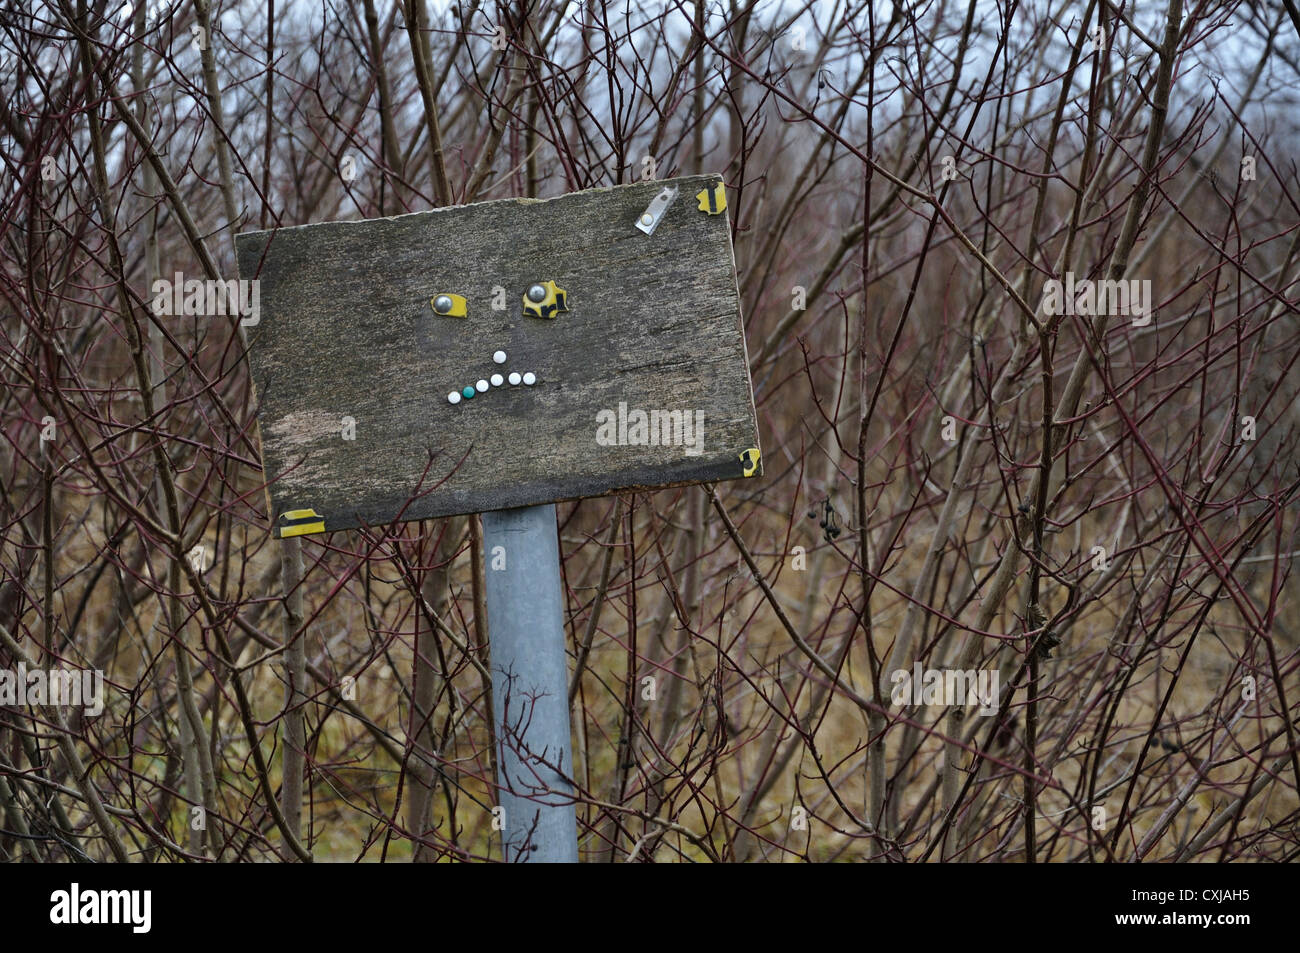 Germany, Bavaria, View of sign post like face - Stock Image